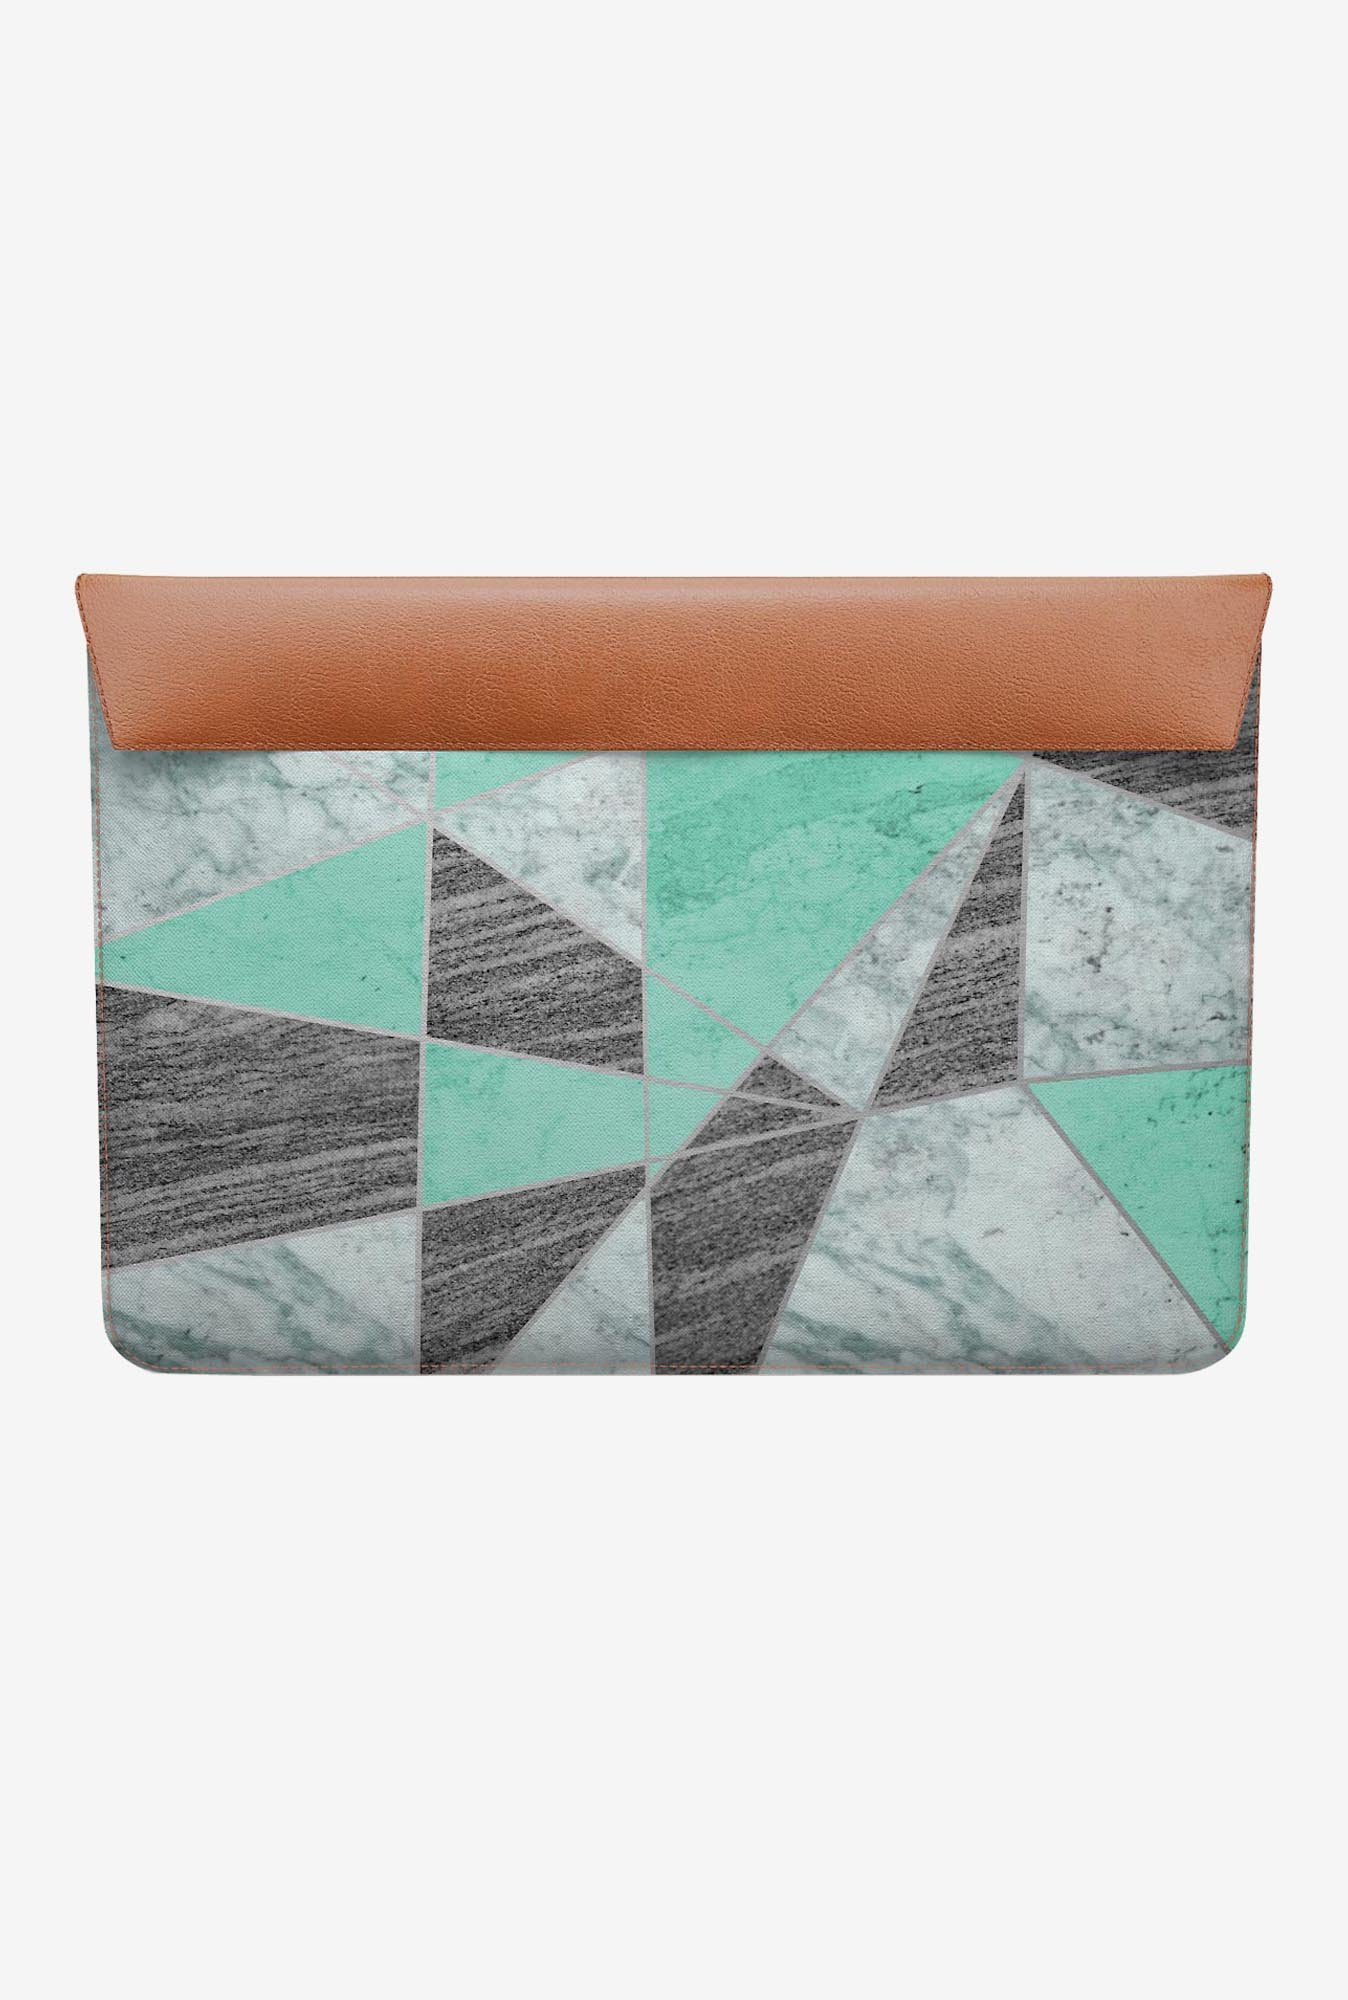 DailyObjects Marble Lines MacBook Air 11 Envelope Sleeve